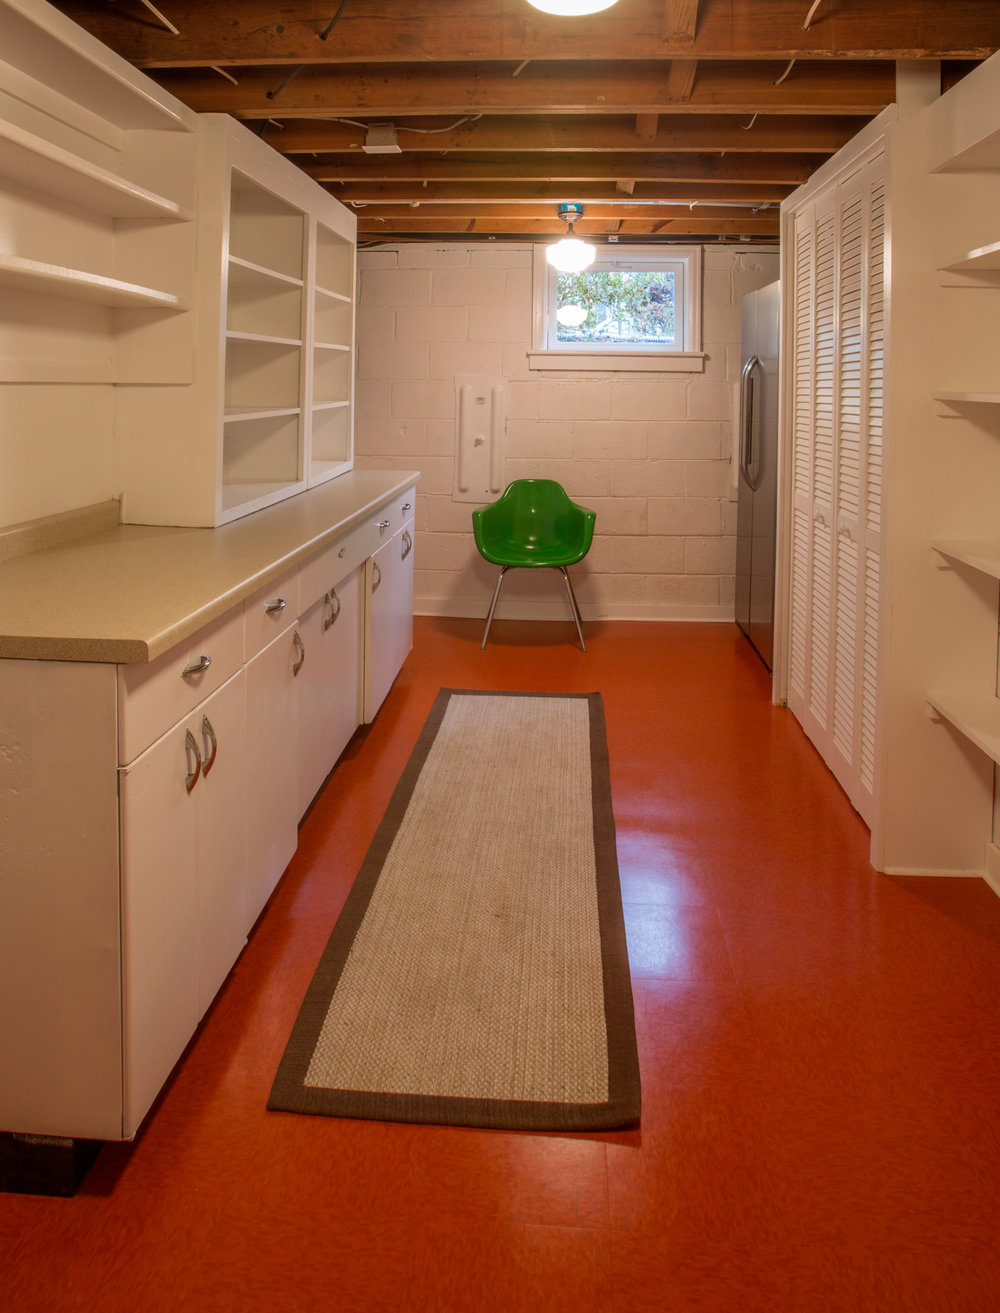 Laundry Room with re-purposed cabinets. (Photo: Kent Eanes)